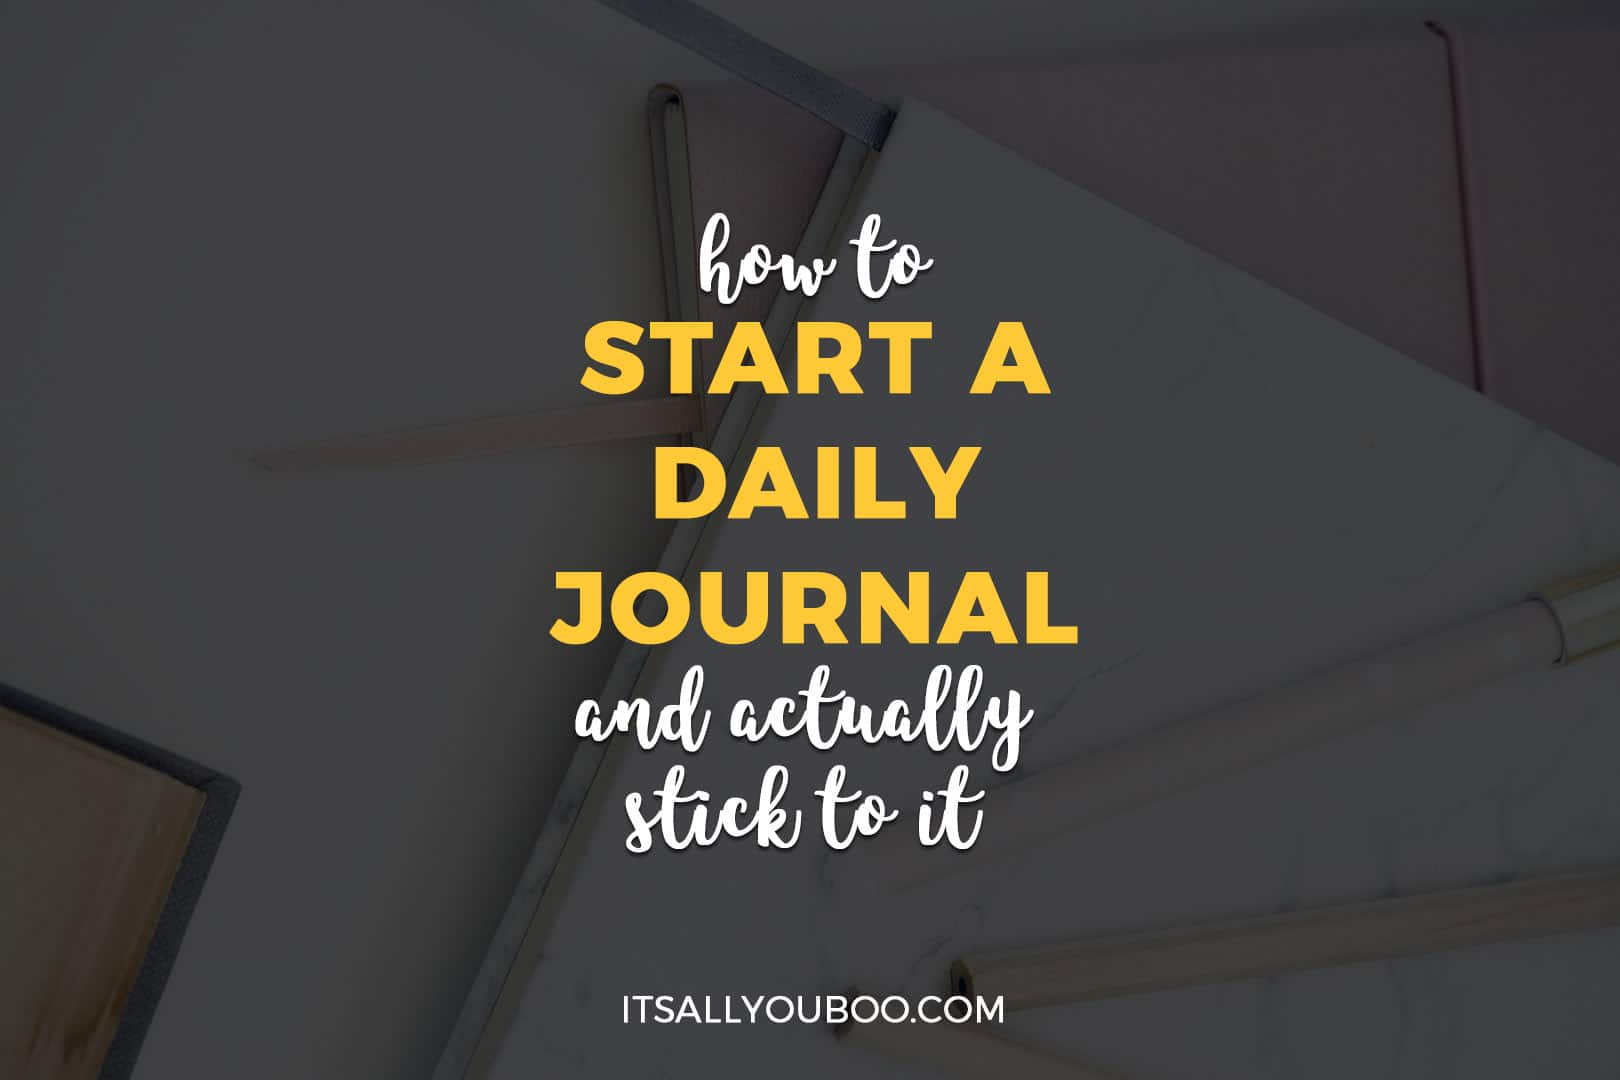 How to Start a Daily Journal and Actually Stick With It